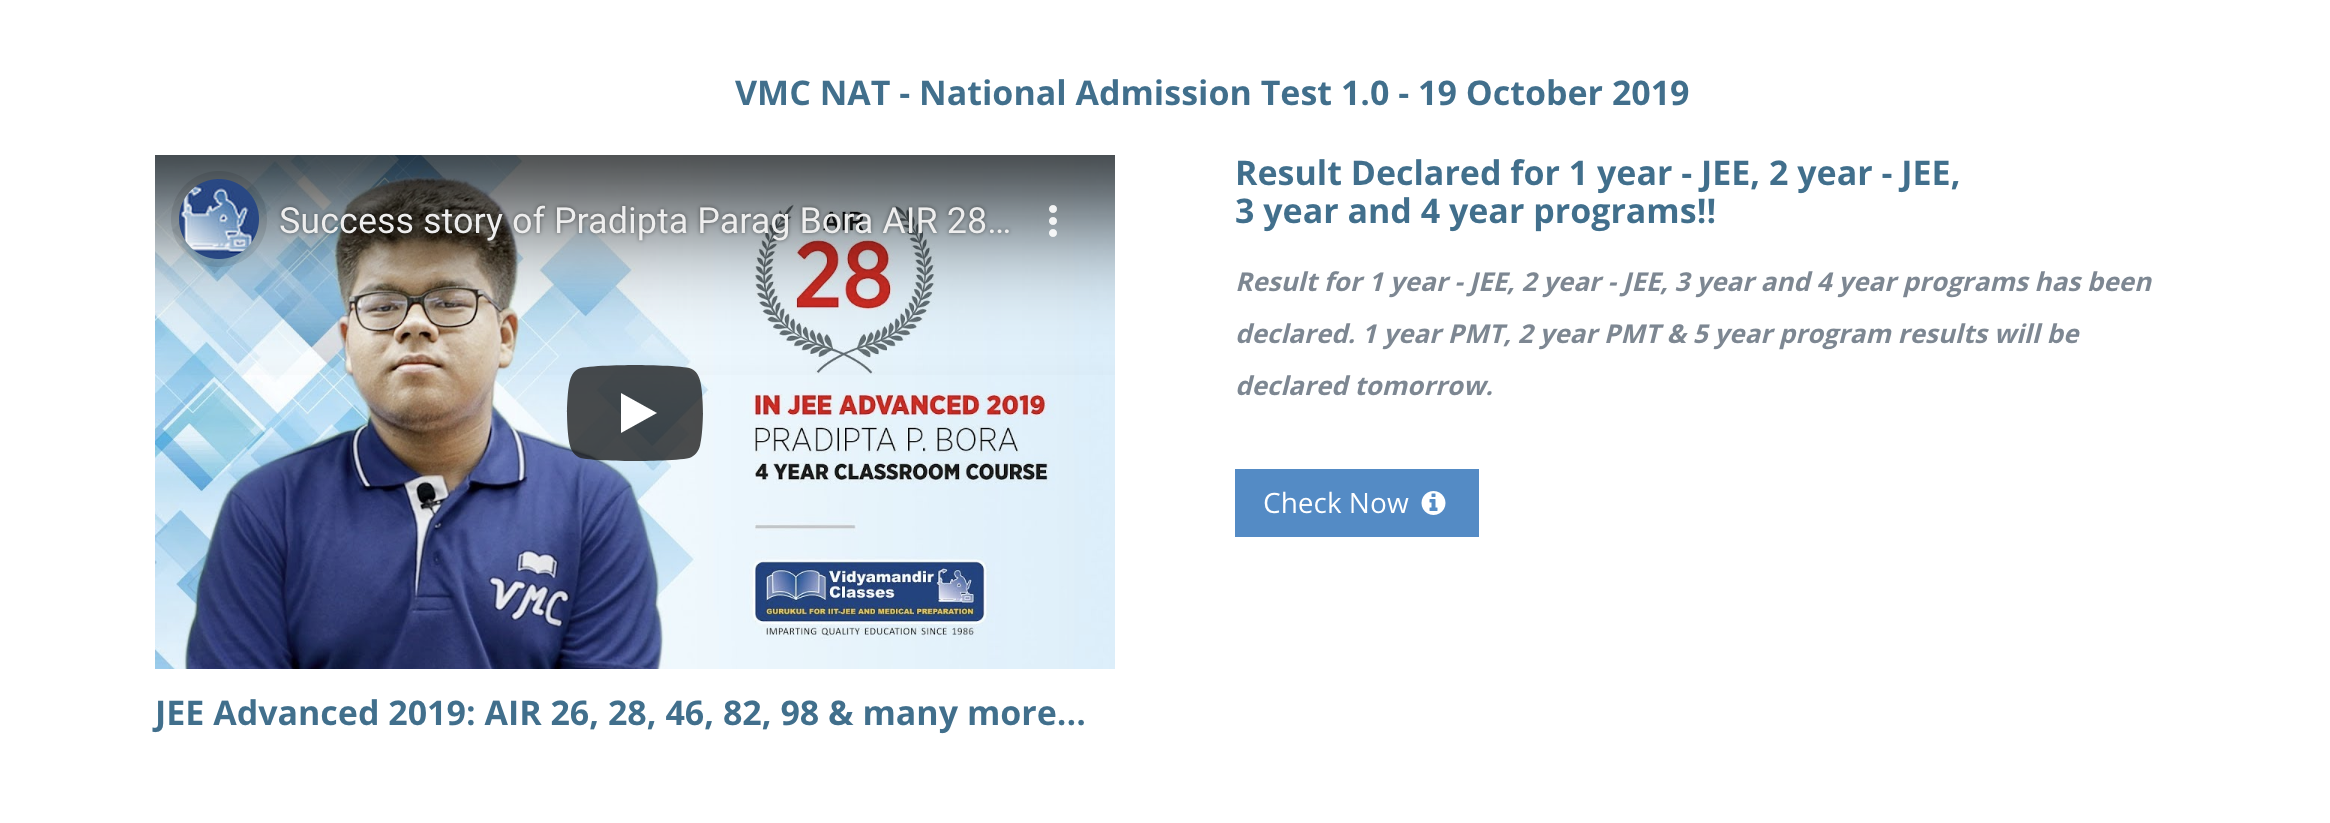 IIT JEE and NEET Coaching | Best Institute for IIT JEE and